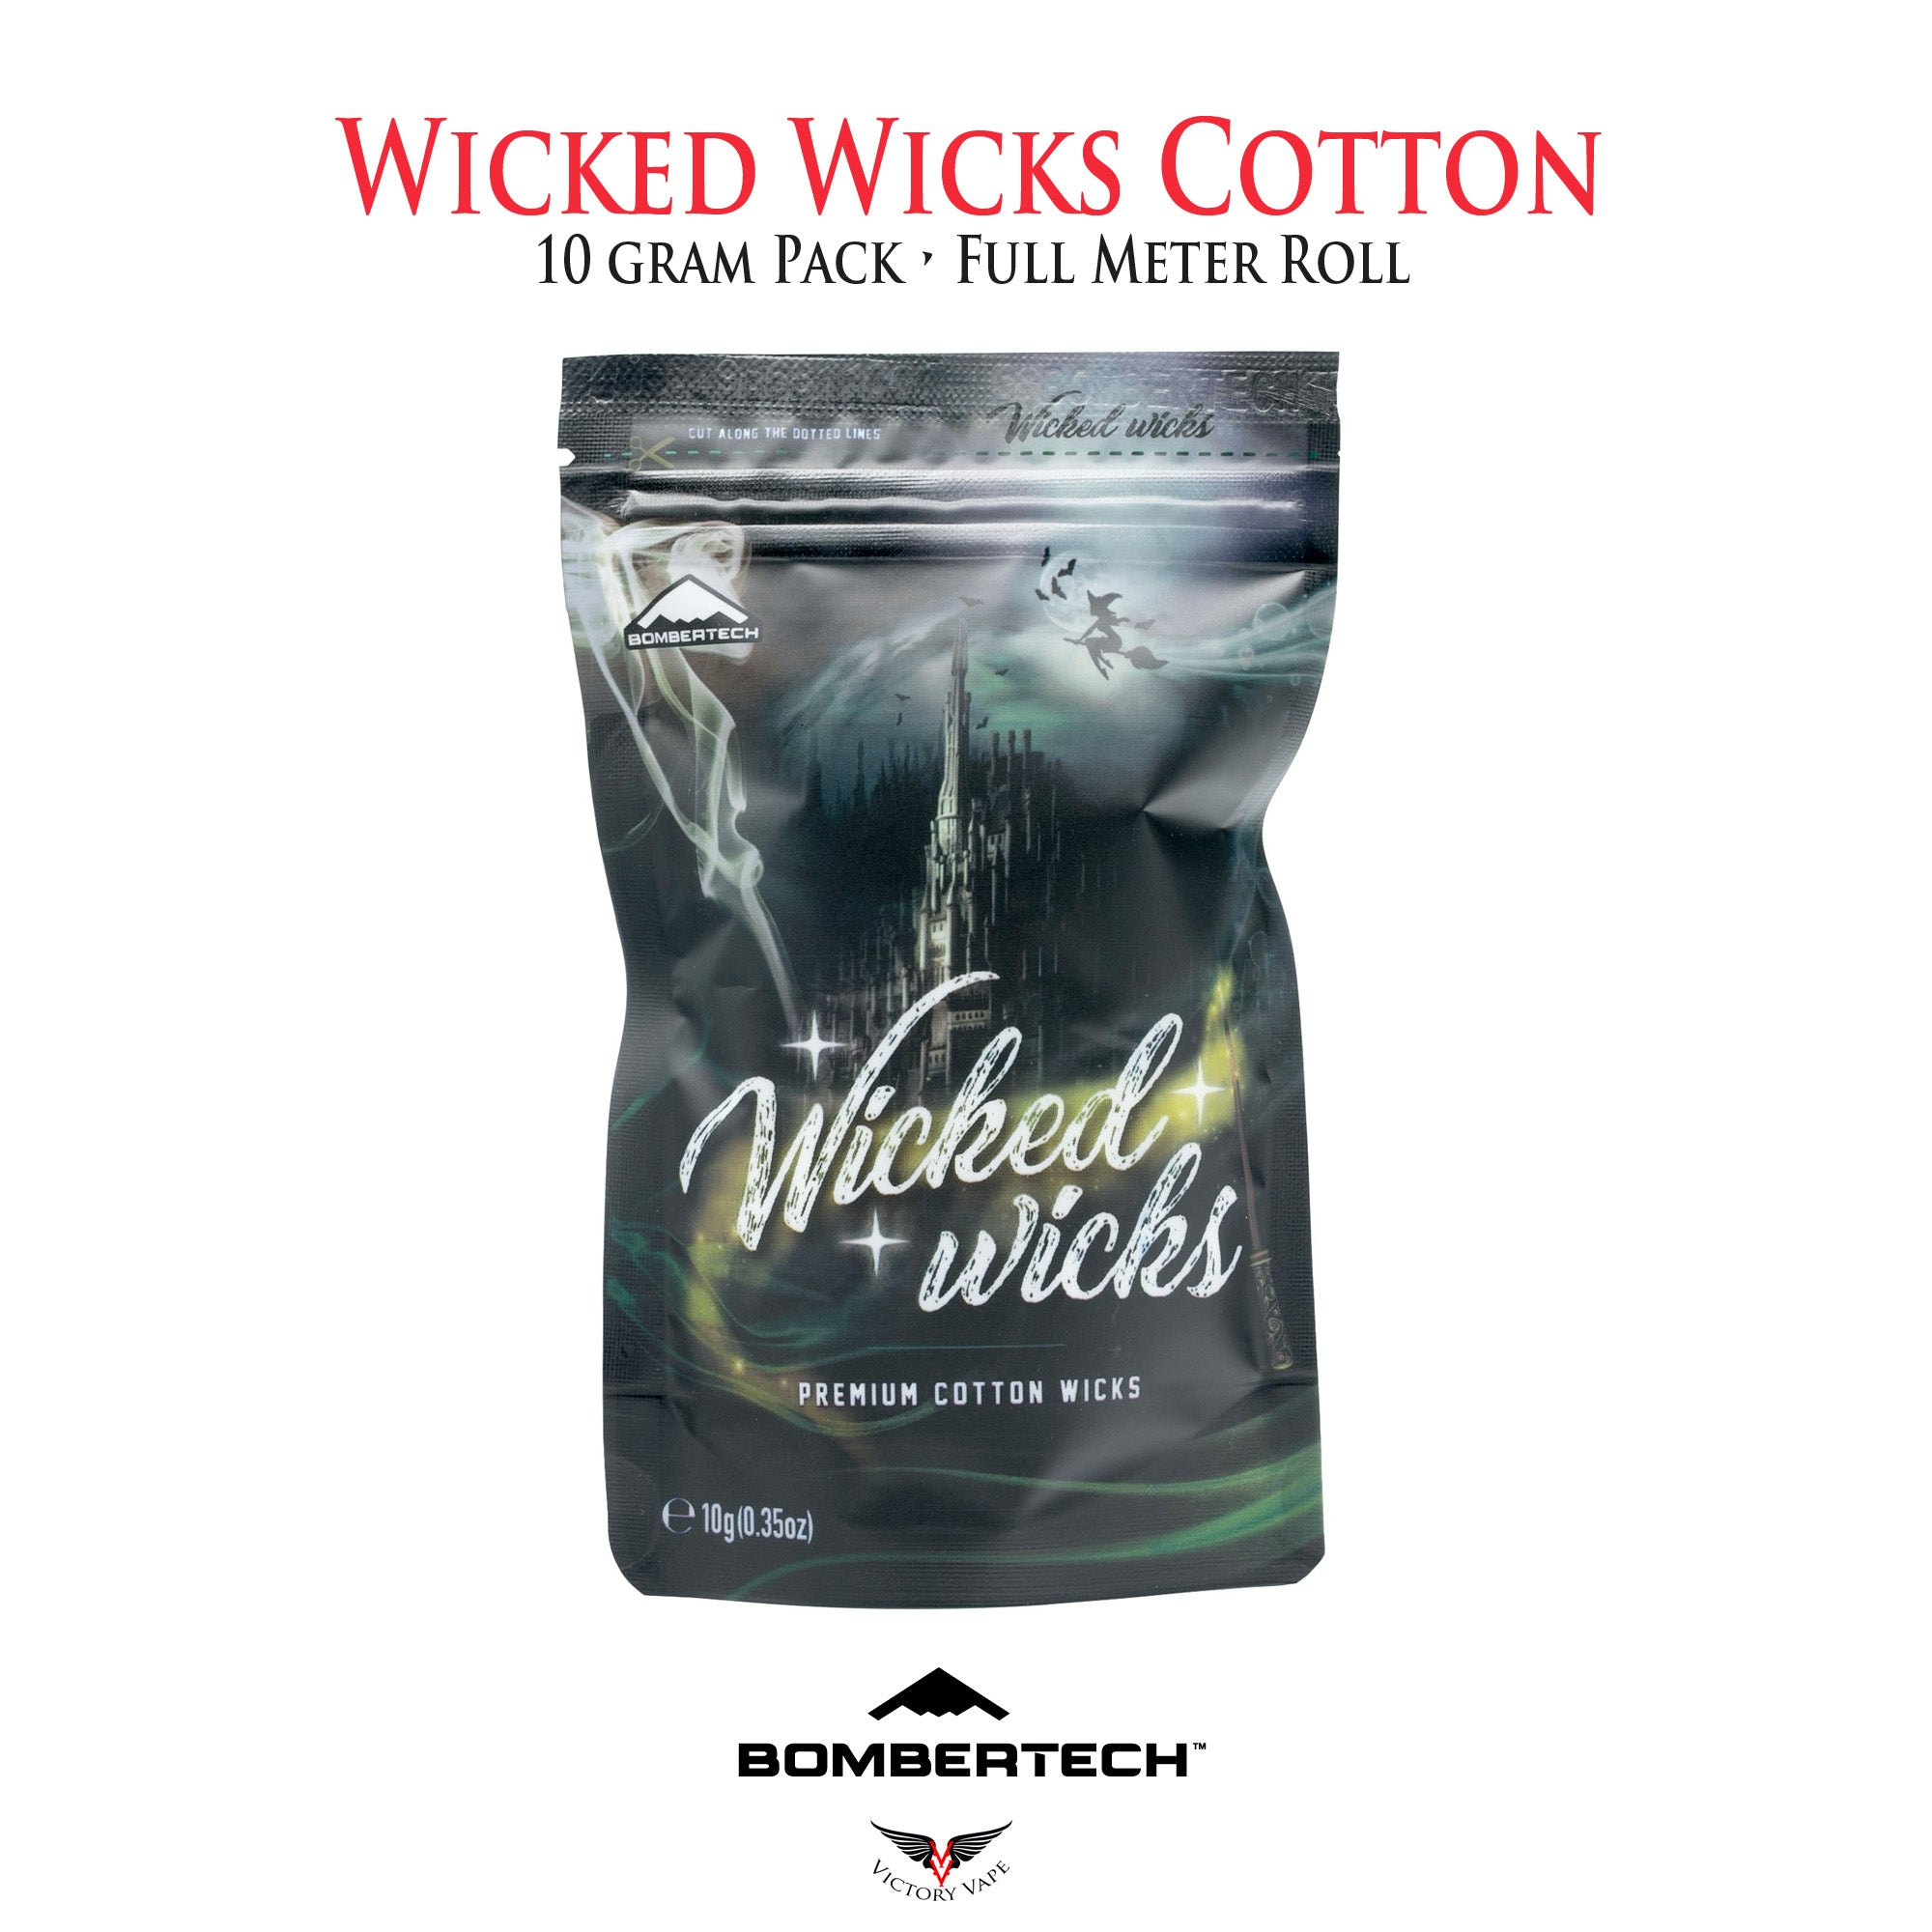 Wicked Wicks Premium Cotton Wicks organic cotton cotton Bombertech